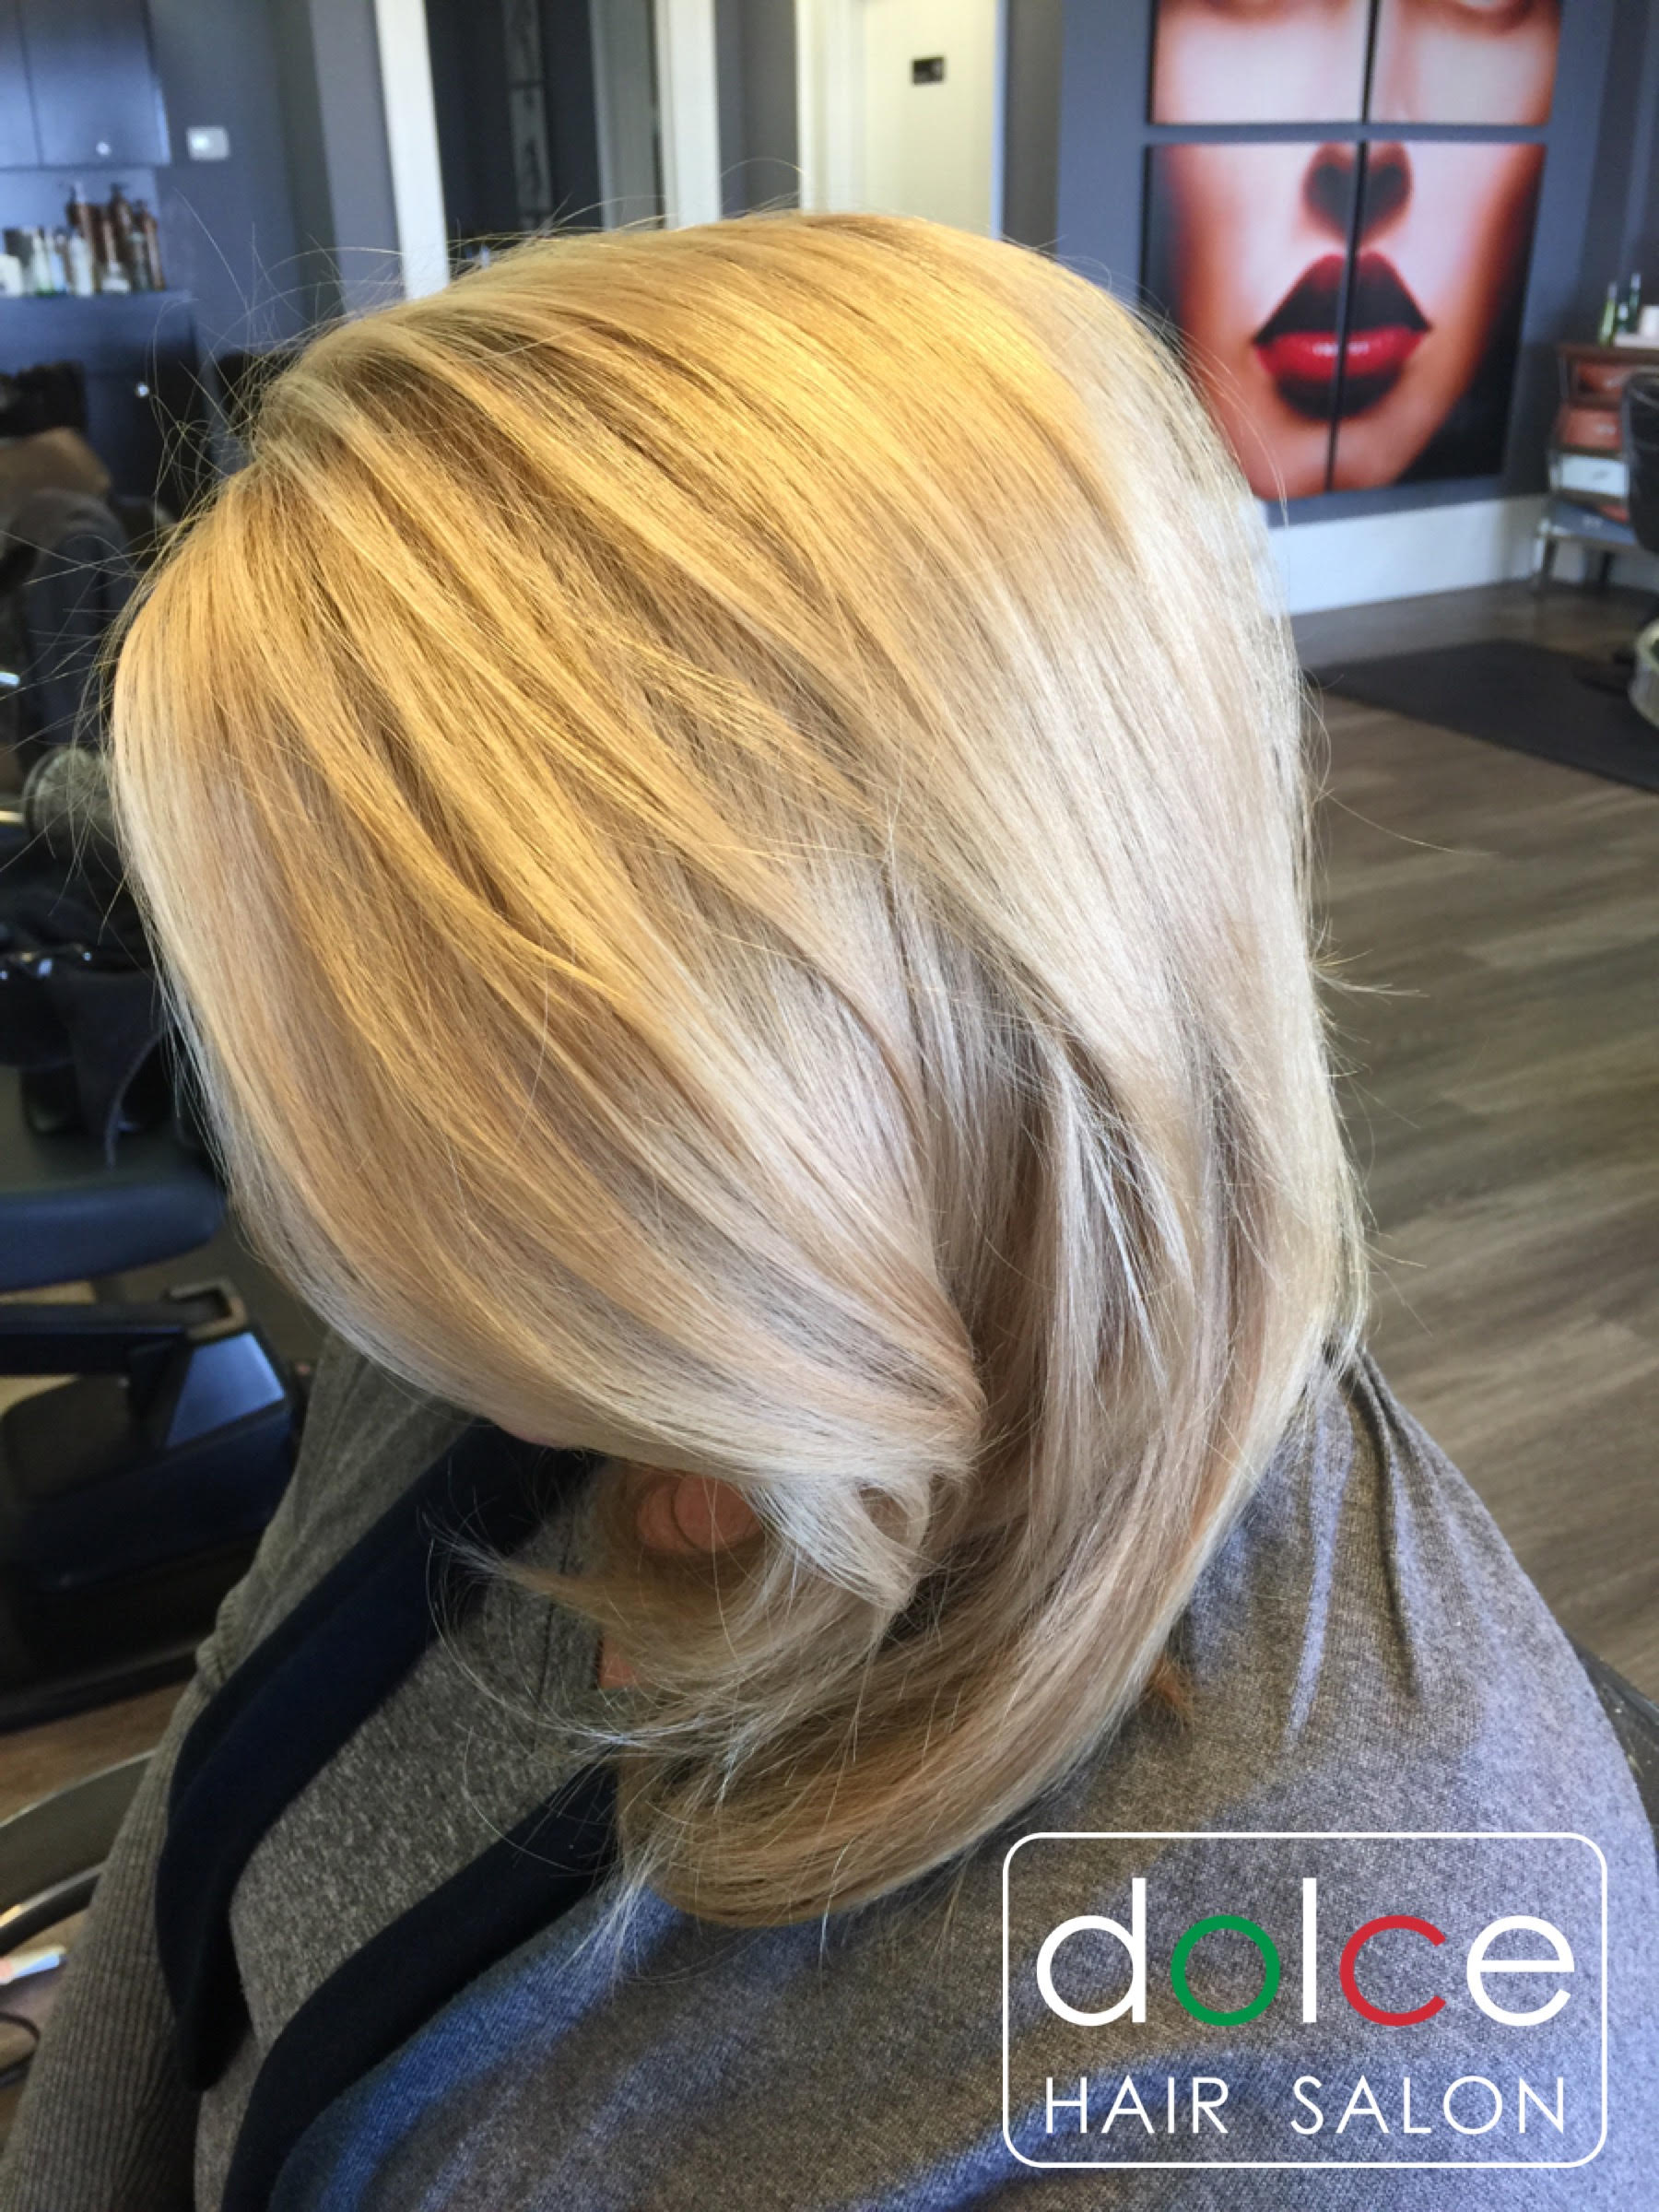 Dolce Hair Salon Pictures Beige Blonde Color